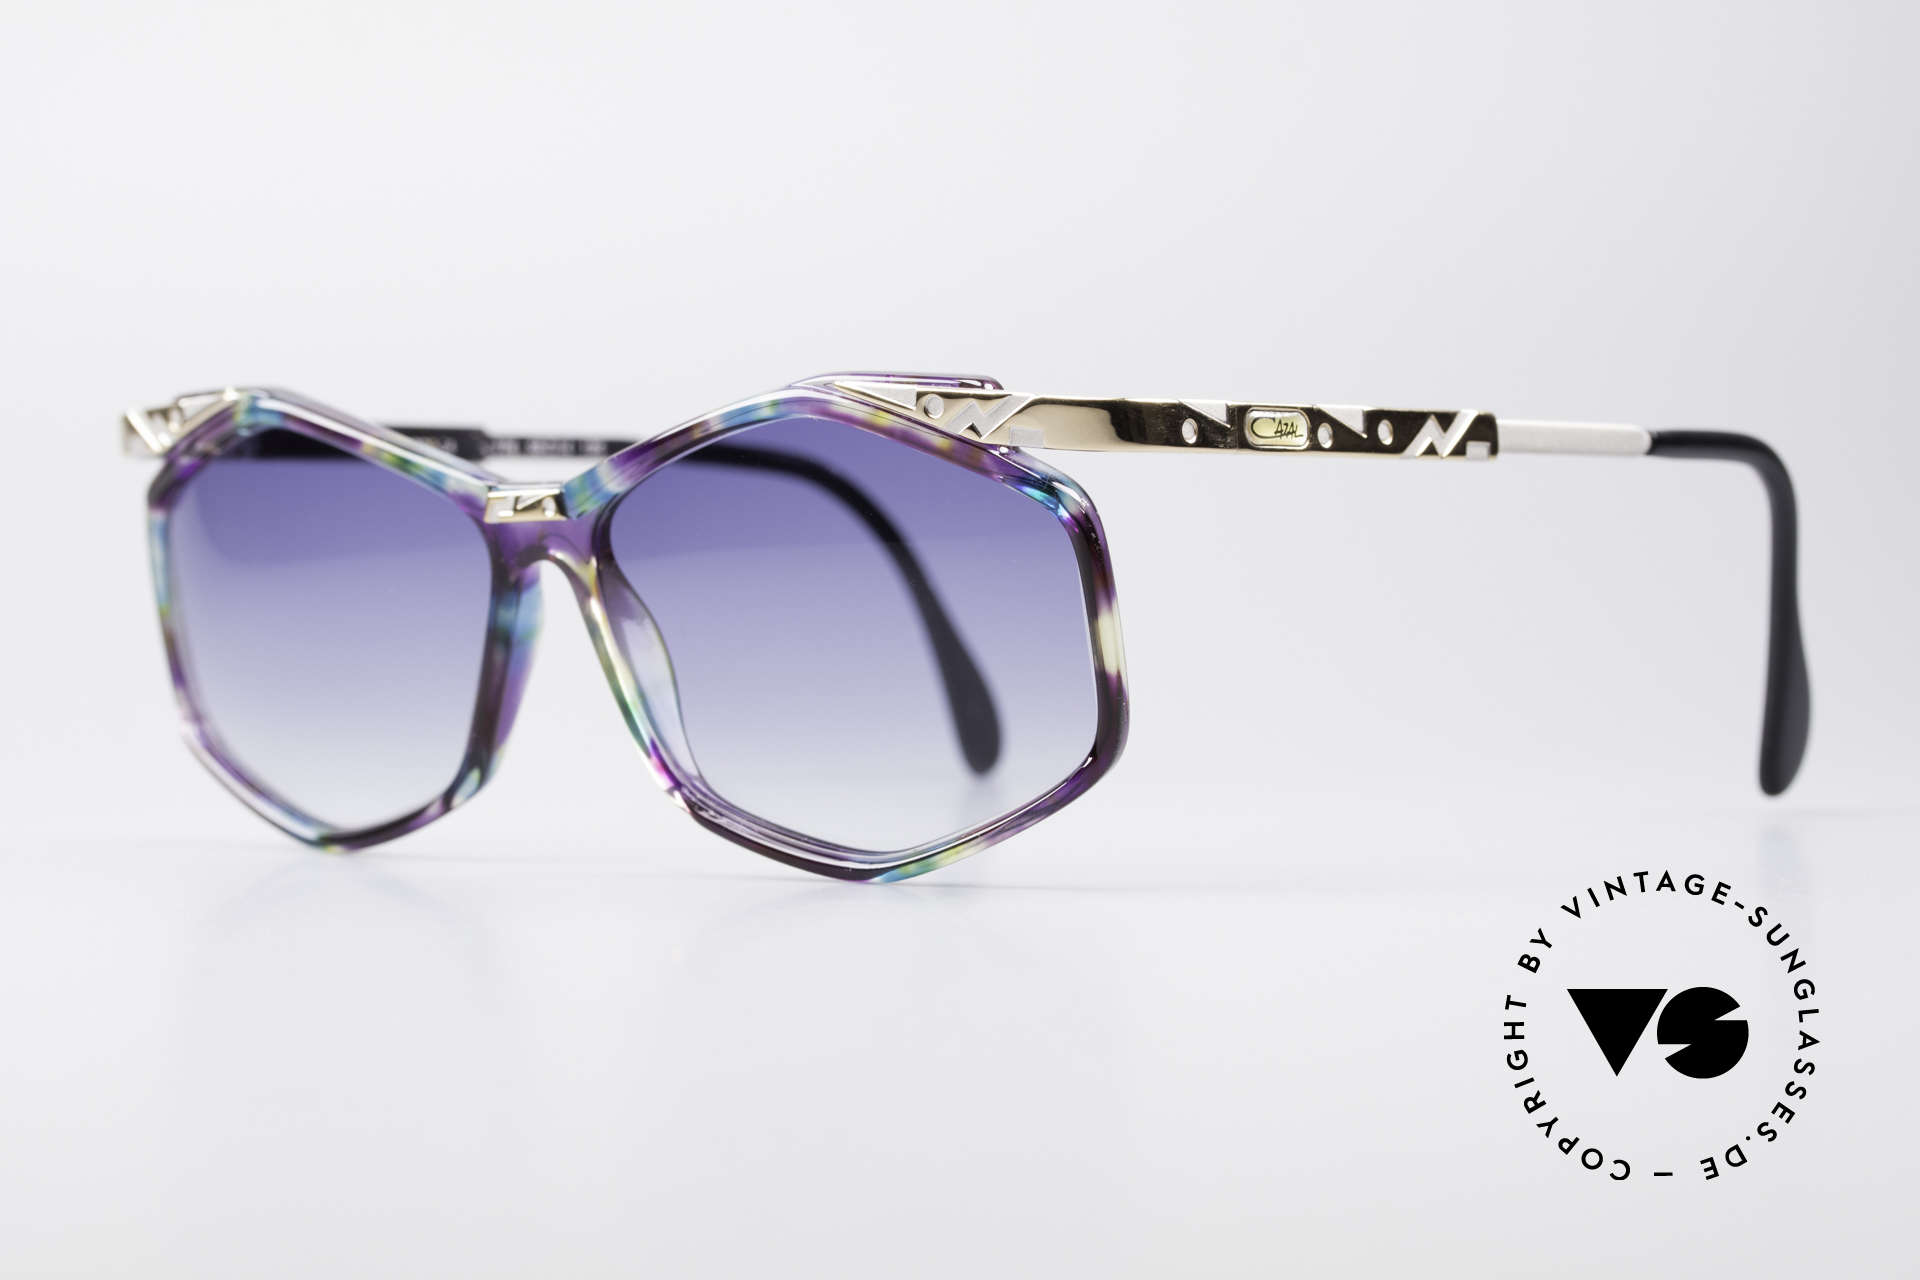 Cazal 354 Vintage Designer Sunglasses, fancy design & colorful paintwork (typically 1990's), Made for Women